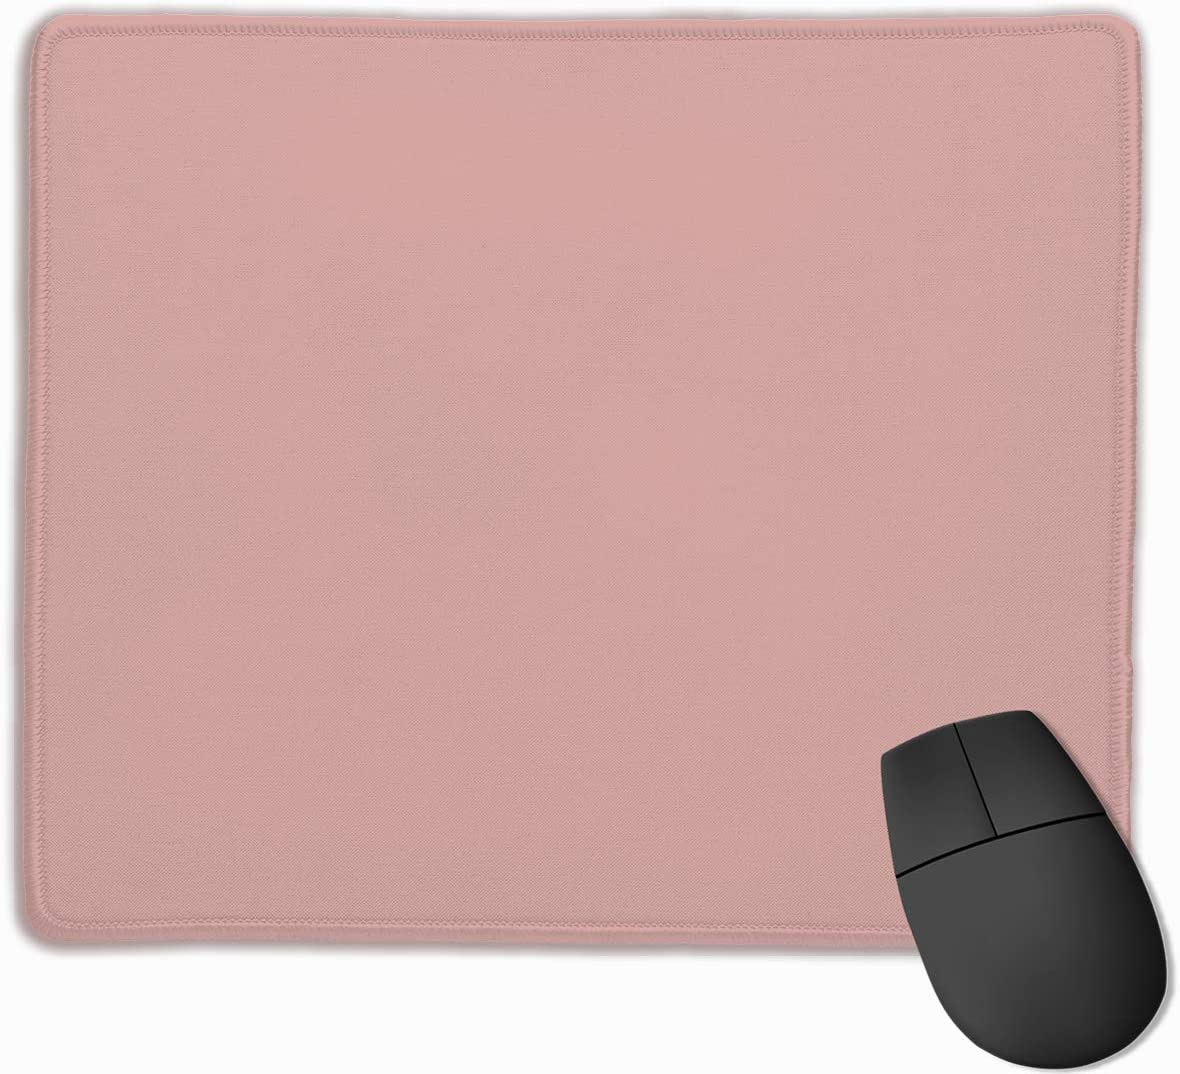 Rose Blush DAA Non-Slip Rubber Mouse Mat Mouse Pad for Desktops PC and Laptops 9.8 X 11.8 inch Computer